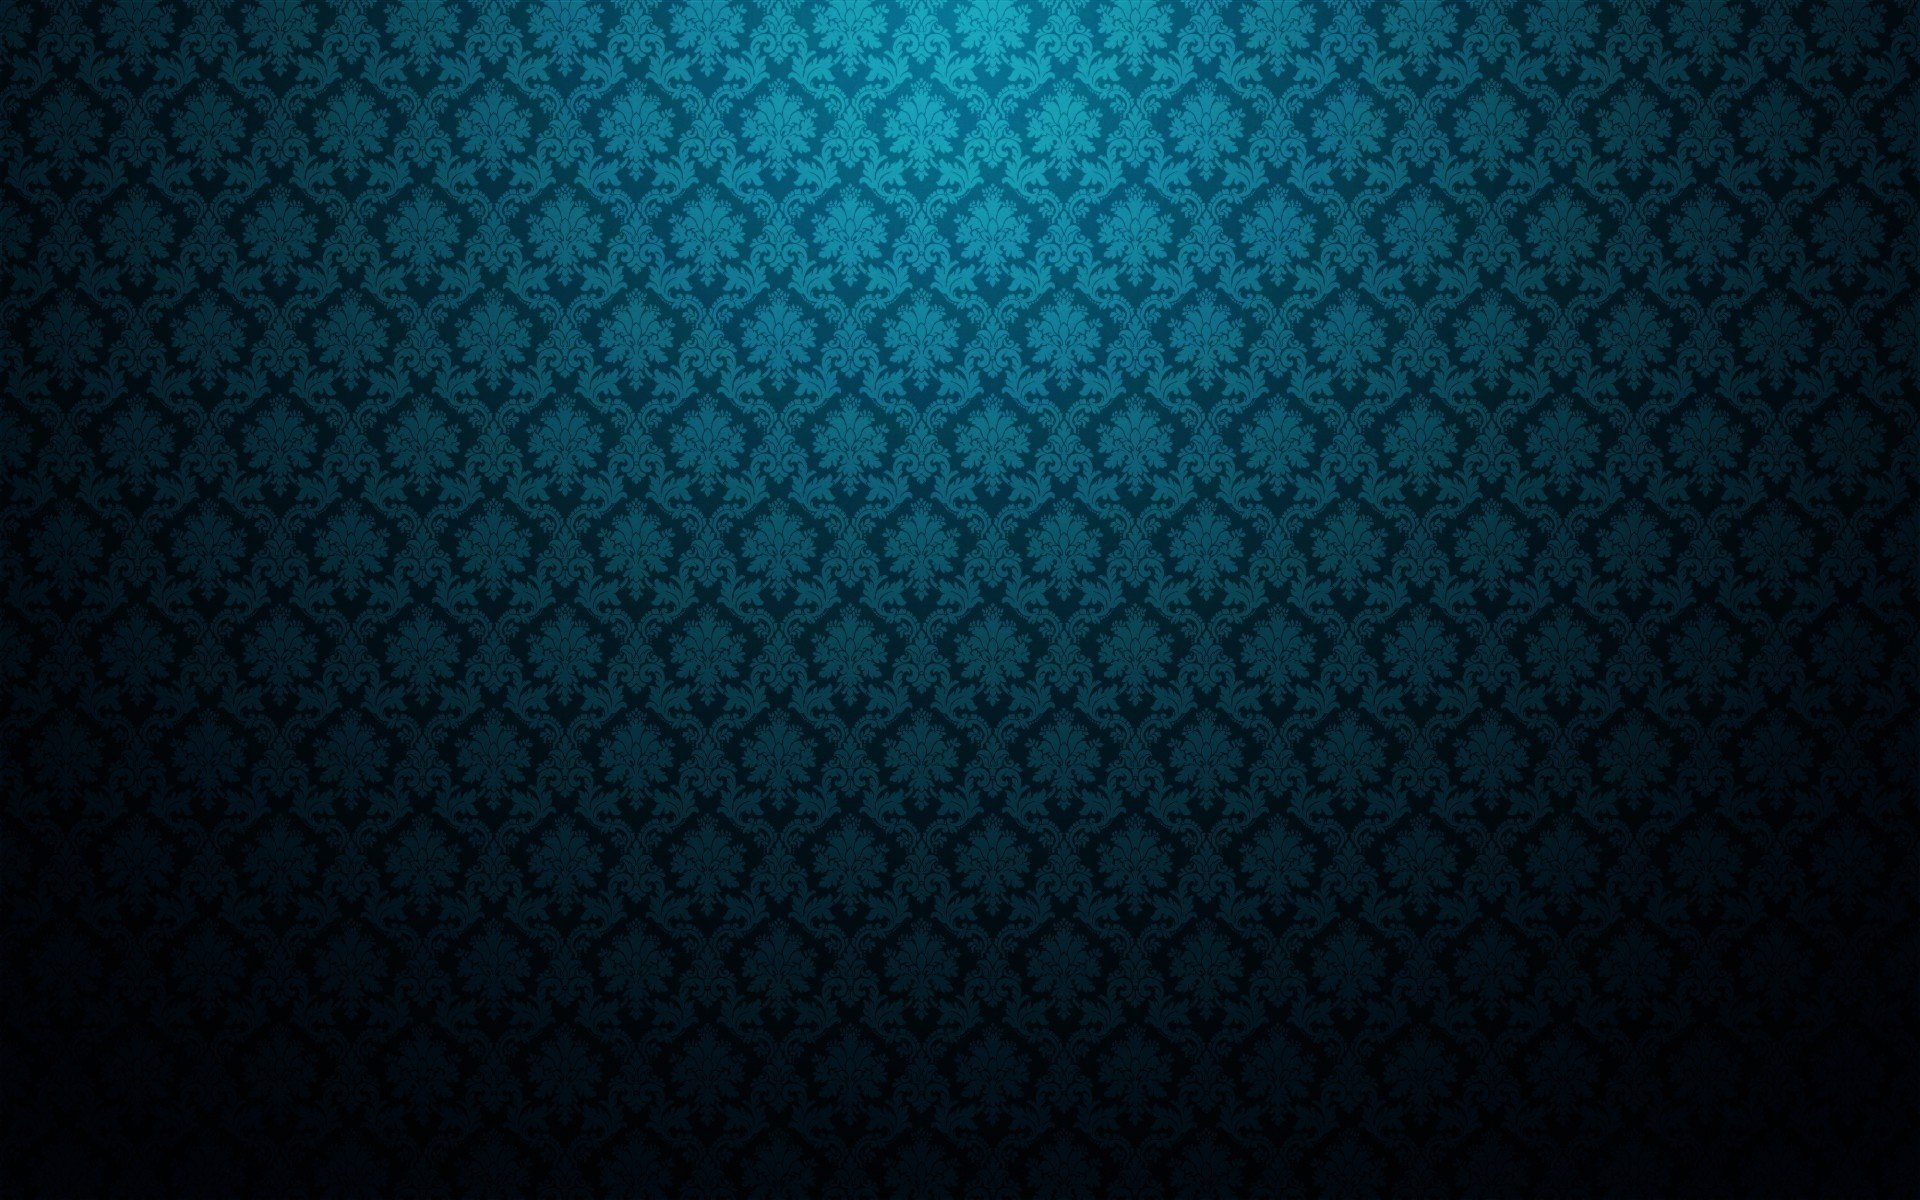 Turquoise And Black Wallpaper   Desktop Backgrounds 1920x1200